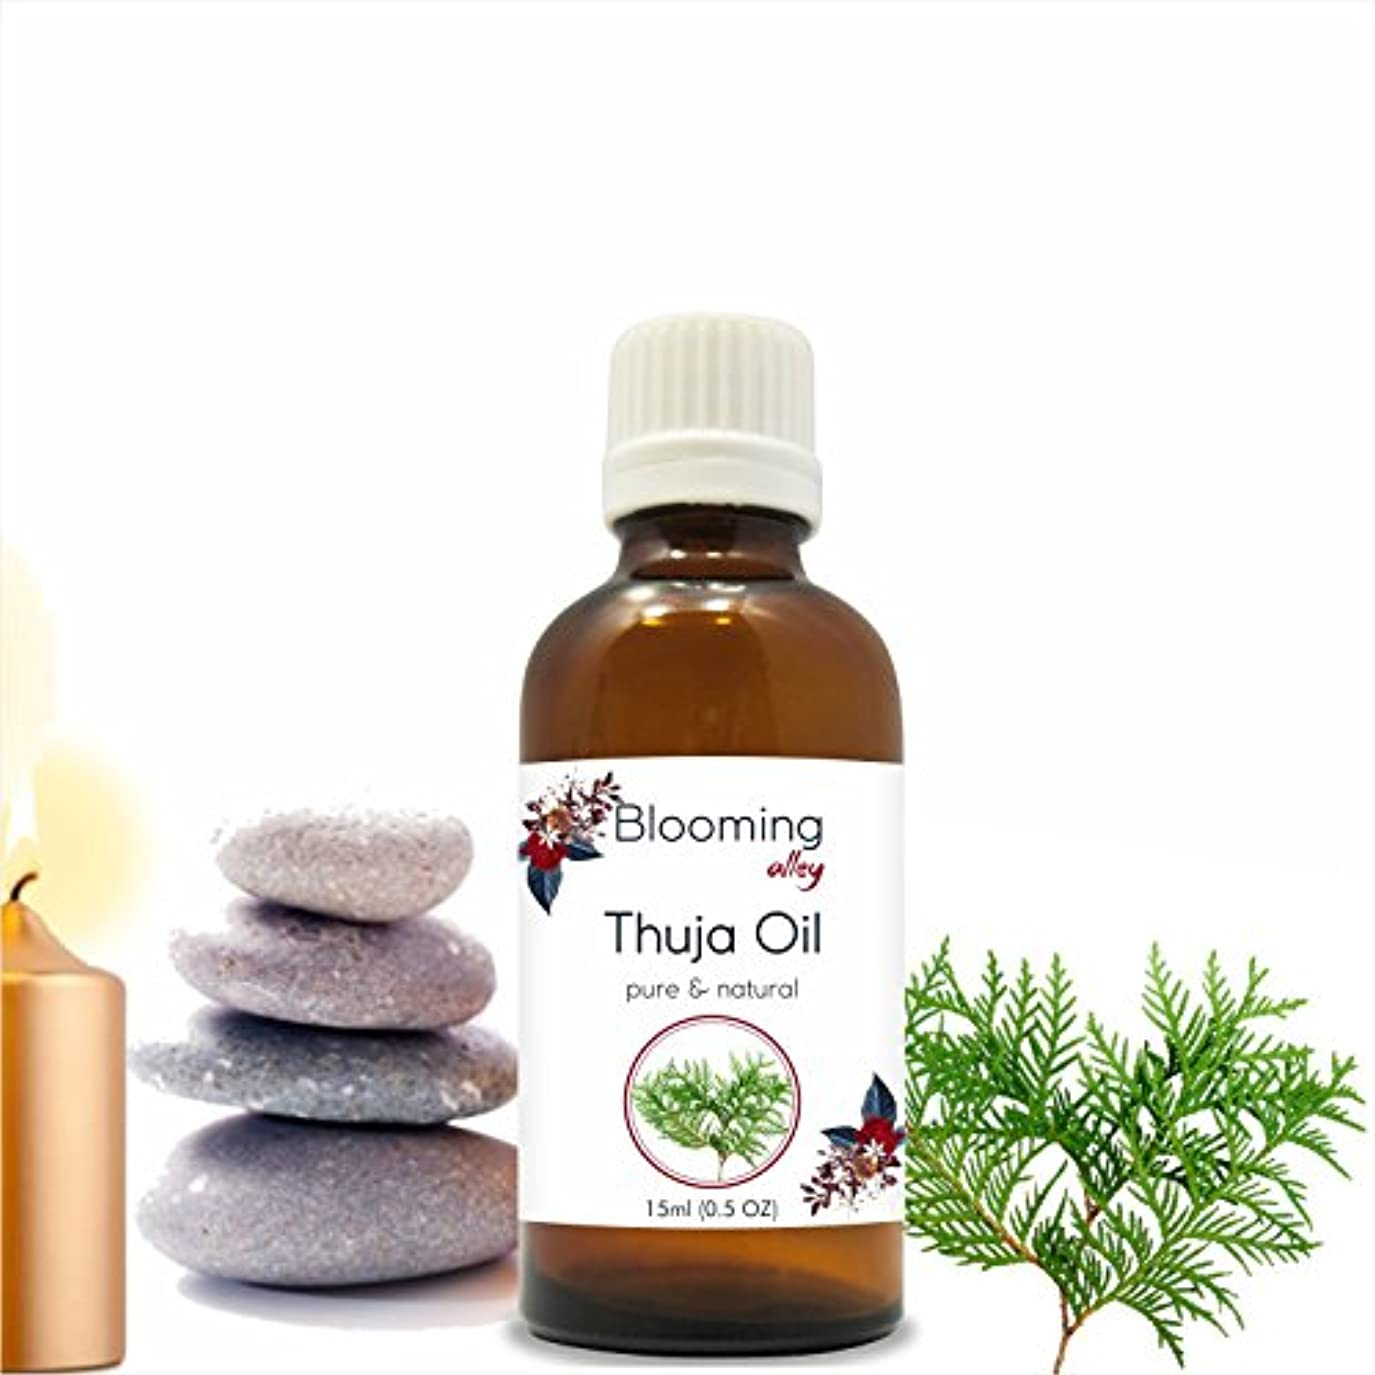 プロジェクター熱意不和Thuja Oil(Thuja Orientali) Essential Oil 15 ml or .50 Fl Oz by Blooming Alley